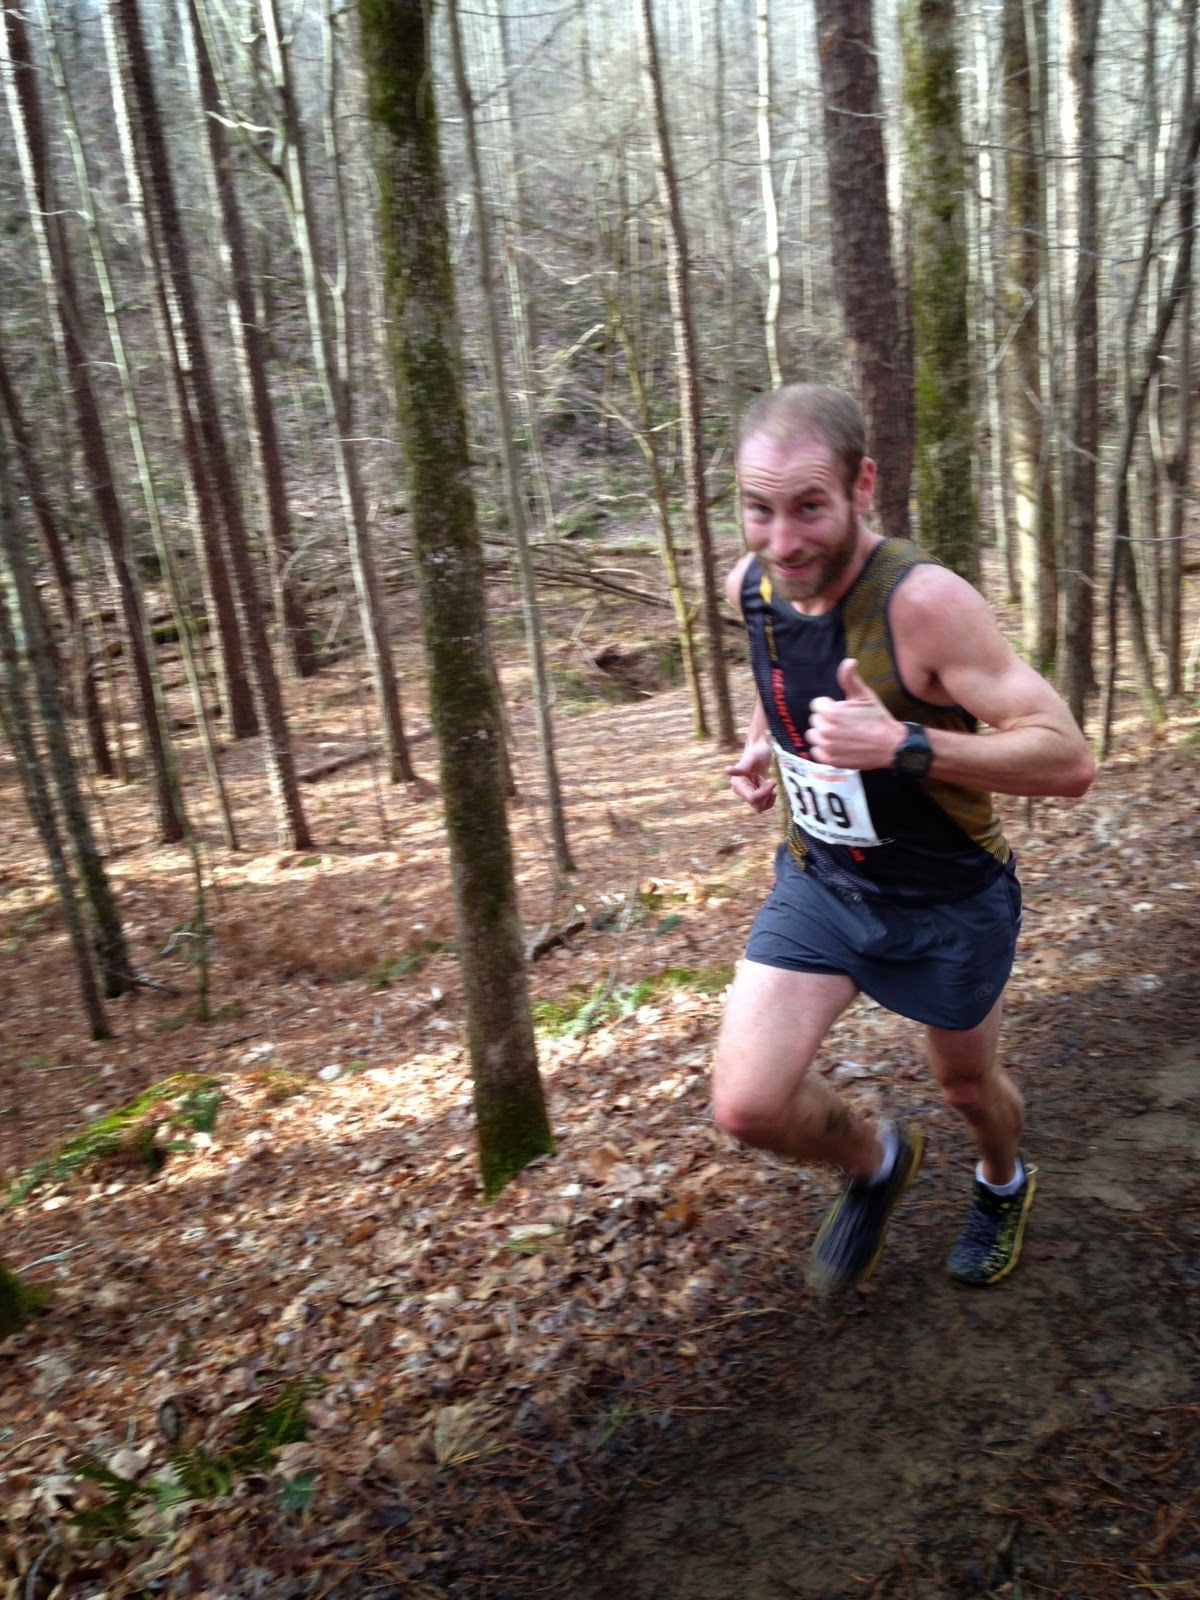 Episode 54: An Interview With Ryan Woods - Mountain Running & Obstacle Course Racing